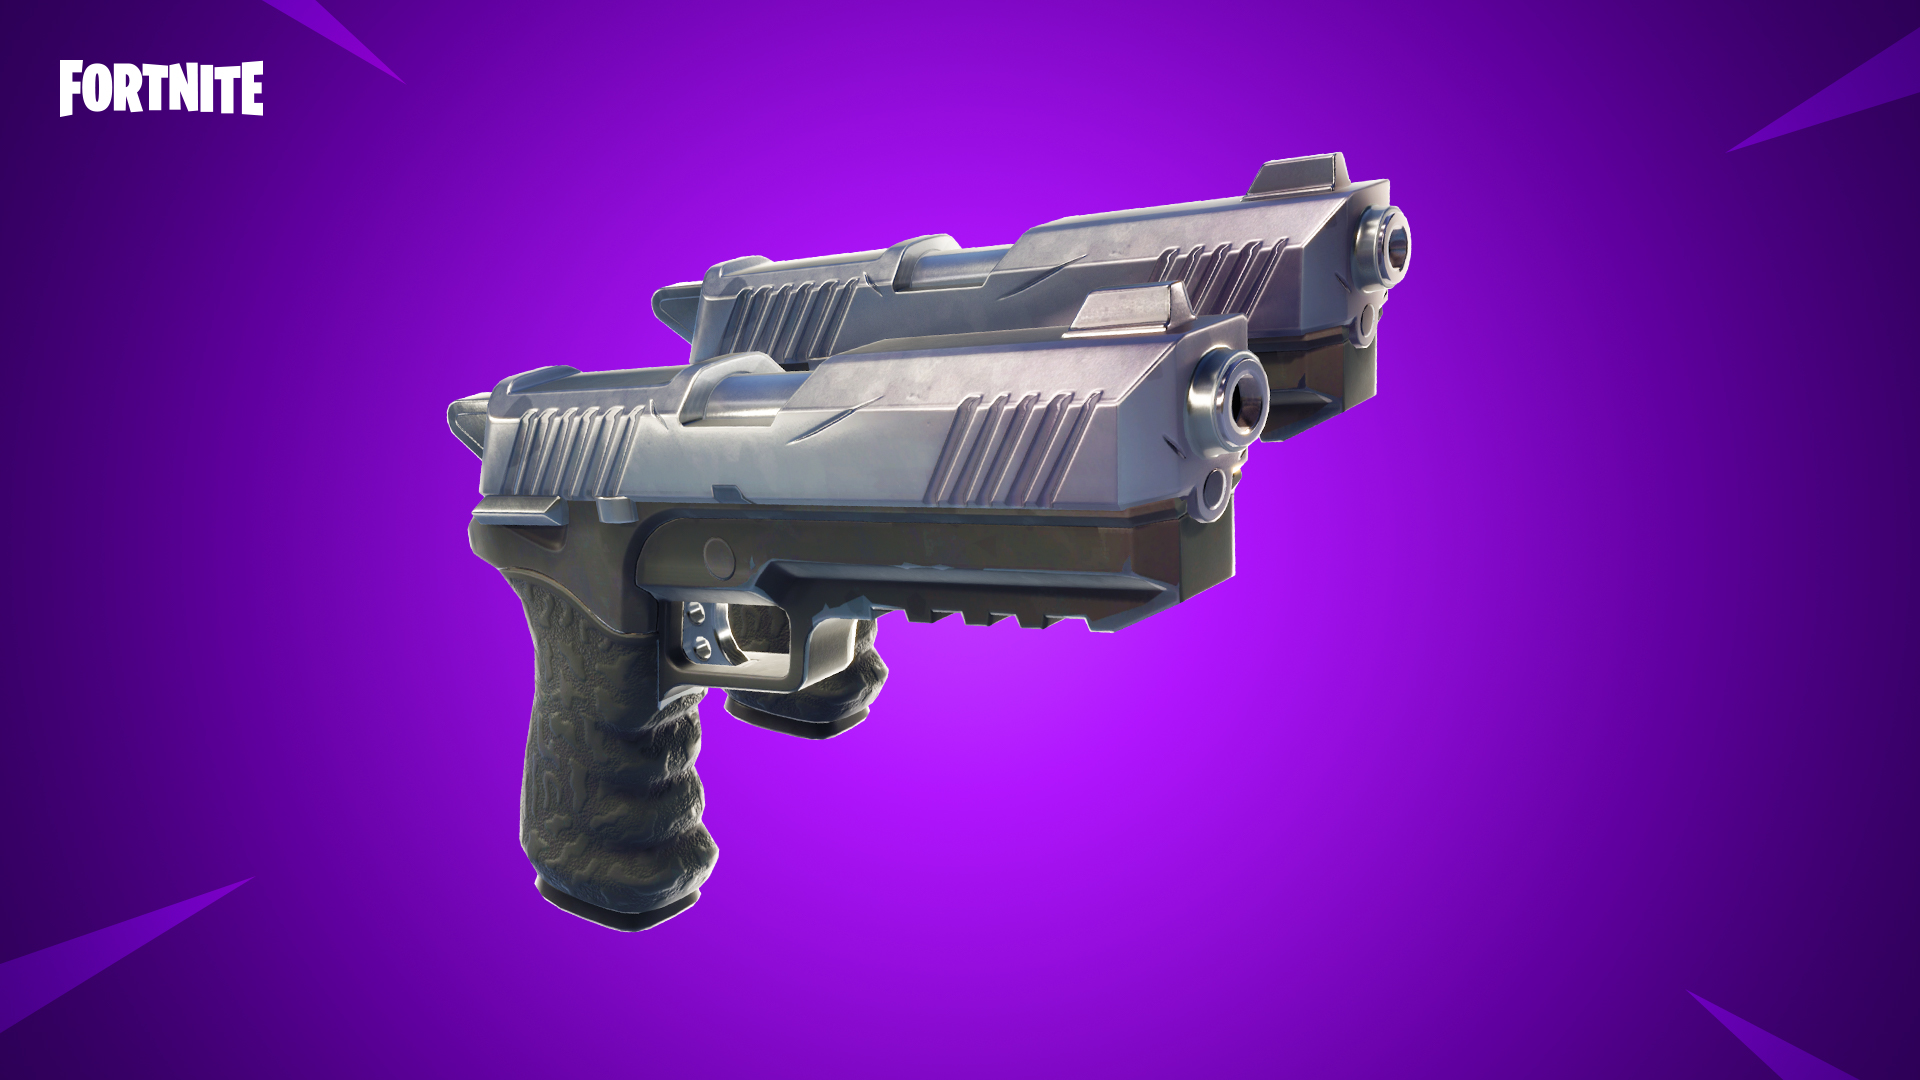 Photo of Fortnite Patch v4.5 Brings Dual Pistols and Introduces a new Limited Time Mode